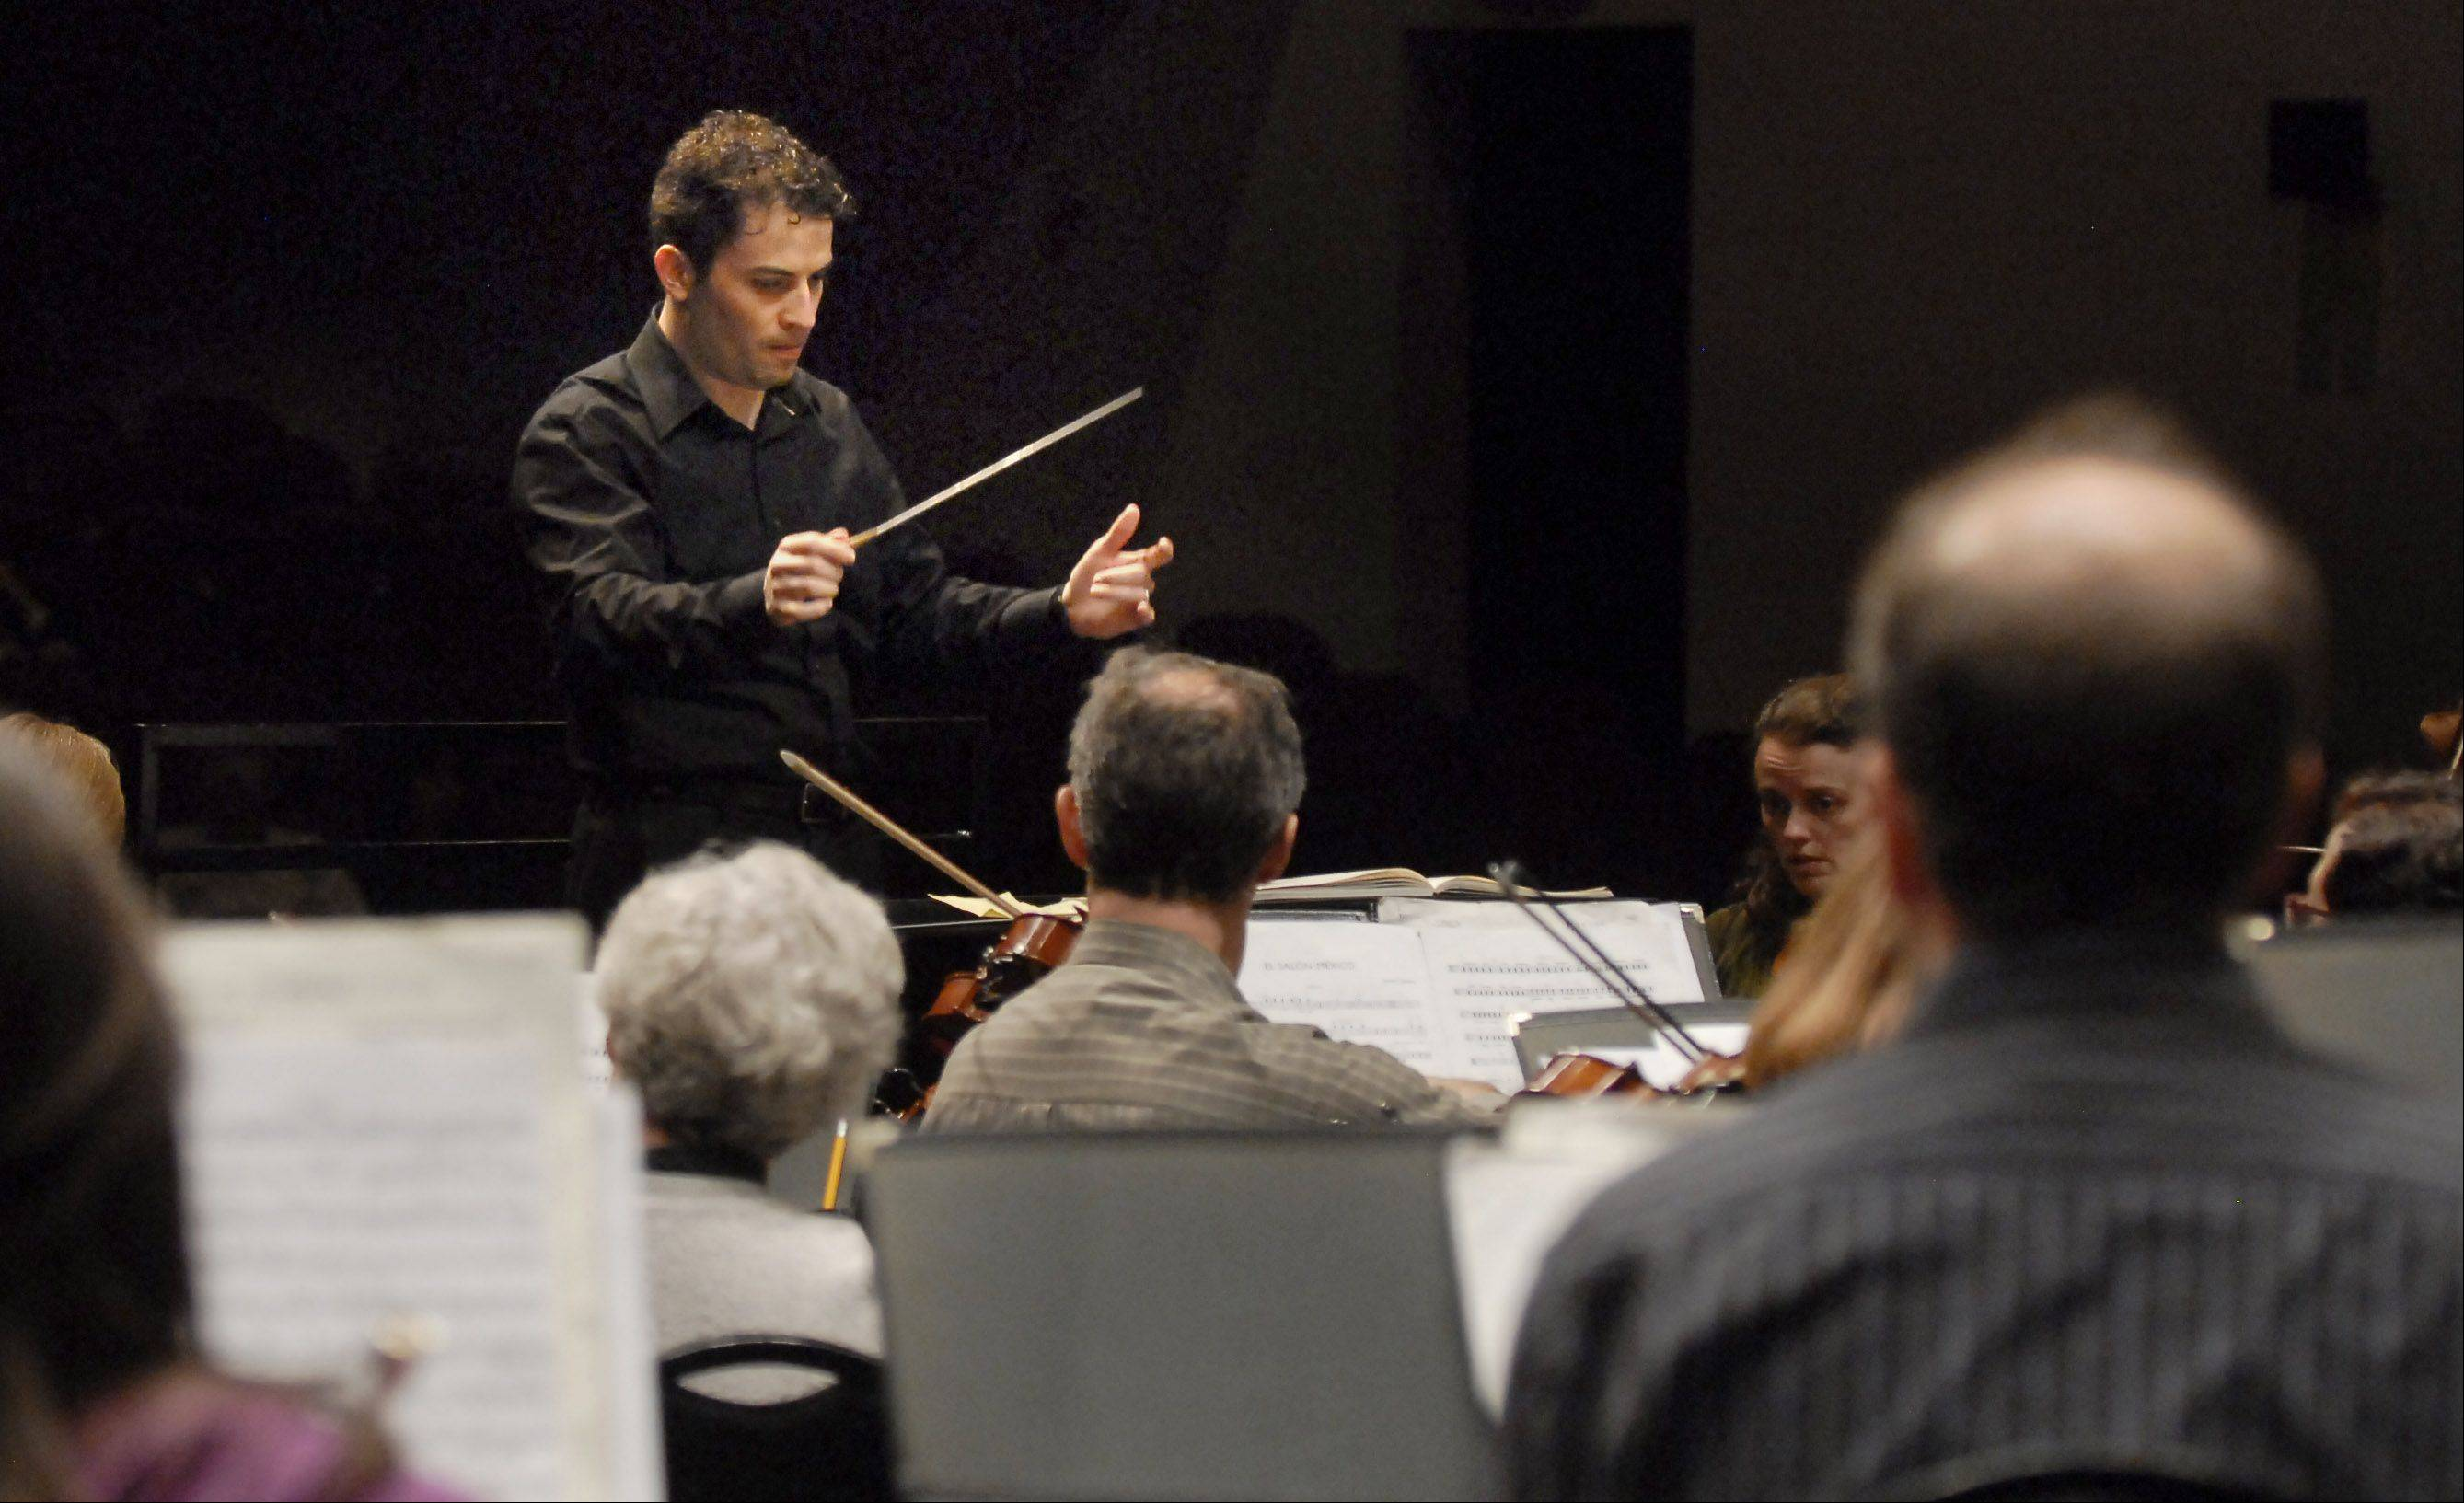 Elgin Symphony Orchestra guest conductor Andres Franco leads the orchestra during rehearsal after a behind-the-scenes event for Daily Herald Subscriber Total Access members.